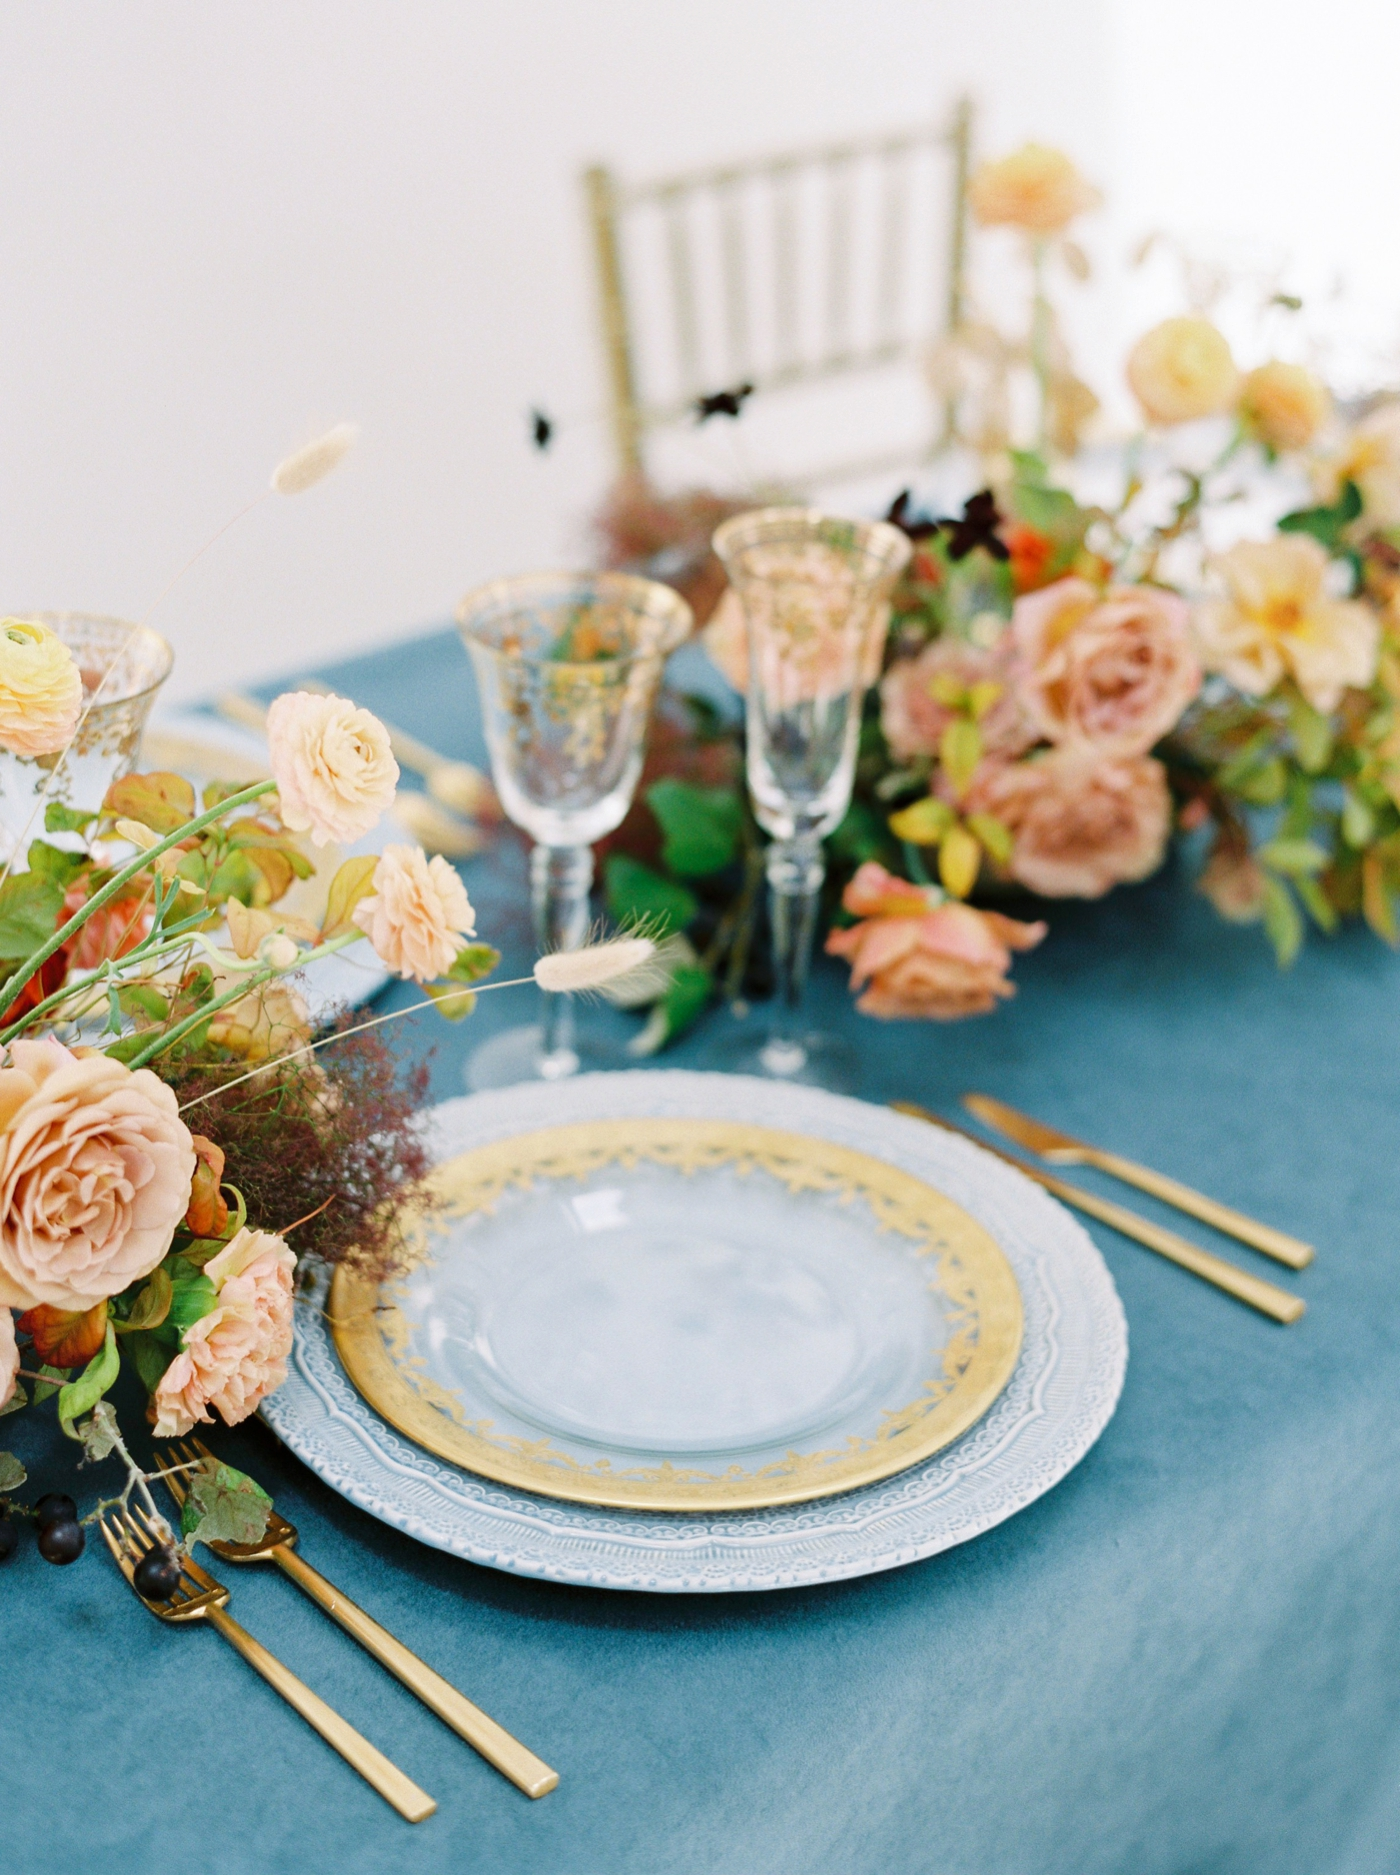 Dallas wedding photographers | wedding photography 1 on 1 workshop | fall wedding inspiration table decor | Justine milton film photographer